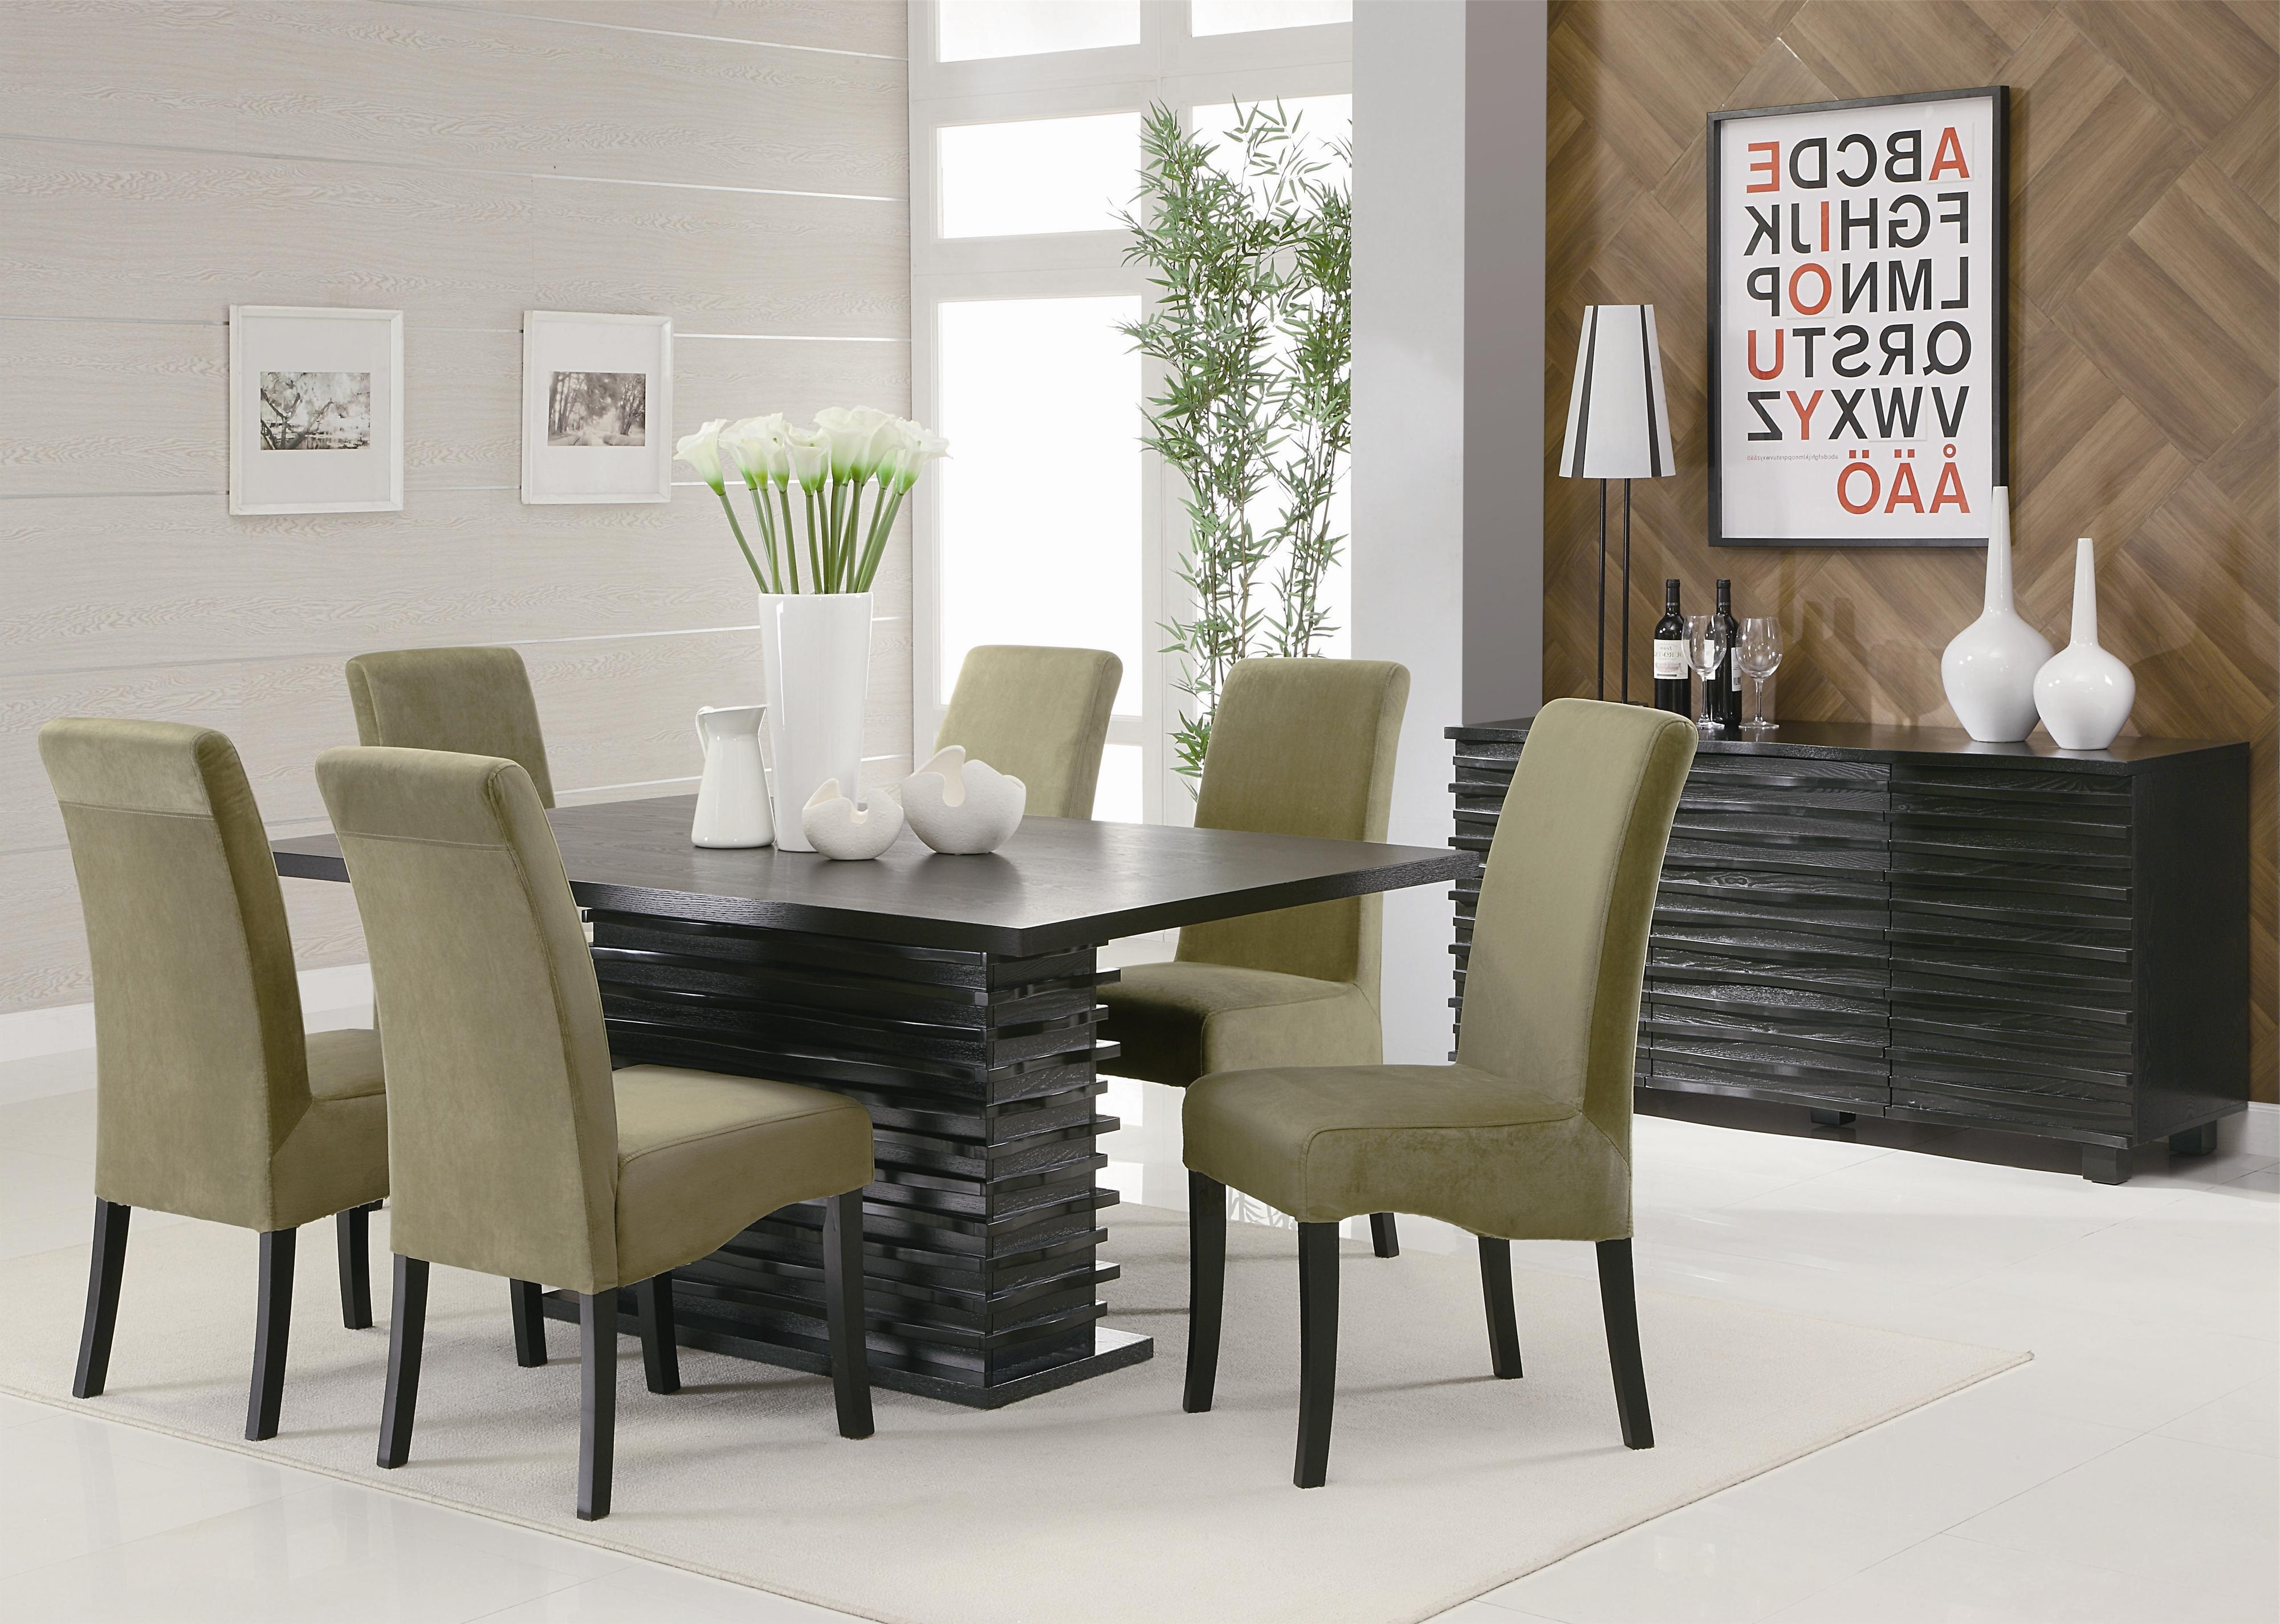 Coaster Stanton Contemporary Dining Table – Coaster Fine Furniture Regarding Most Recently Released Contemporary Dining Room Tables And Chairs (View 6 of 25)